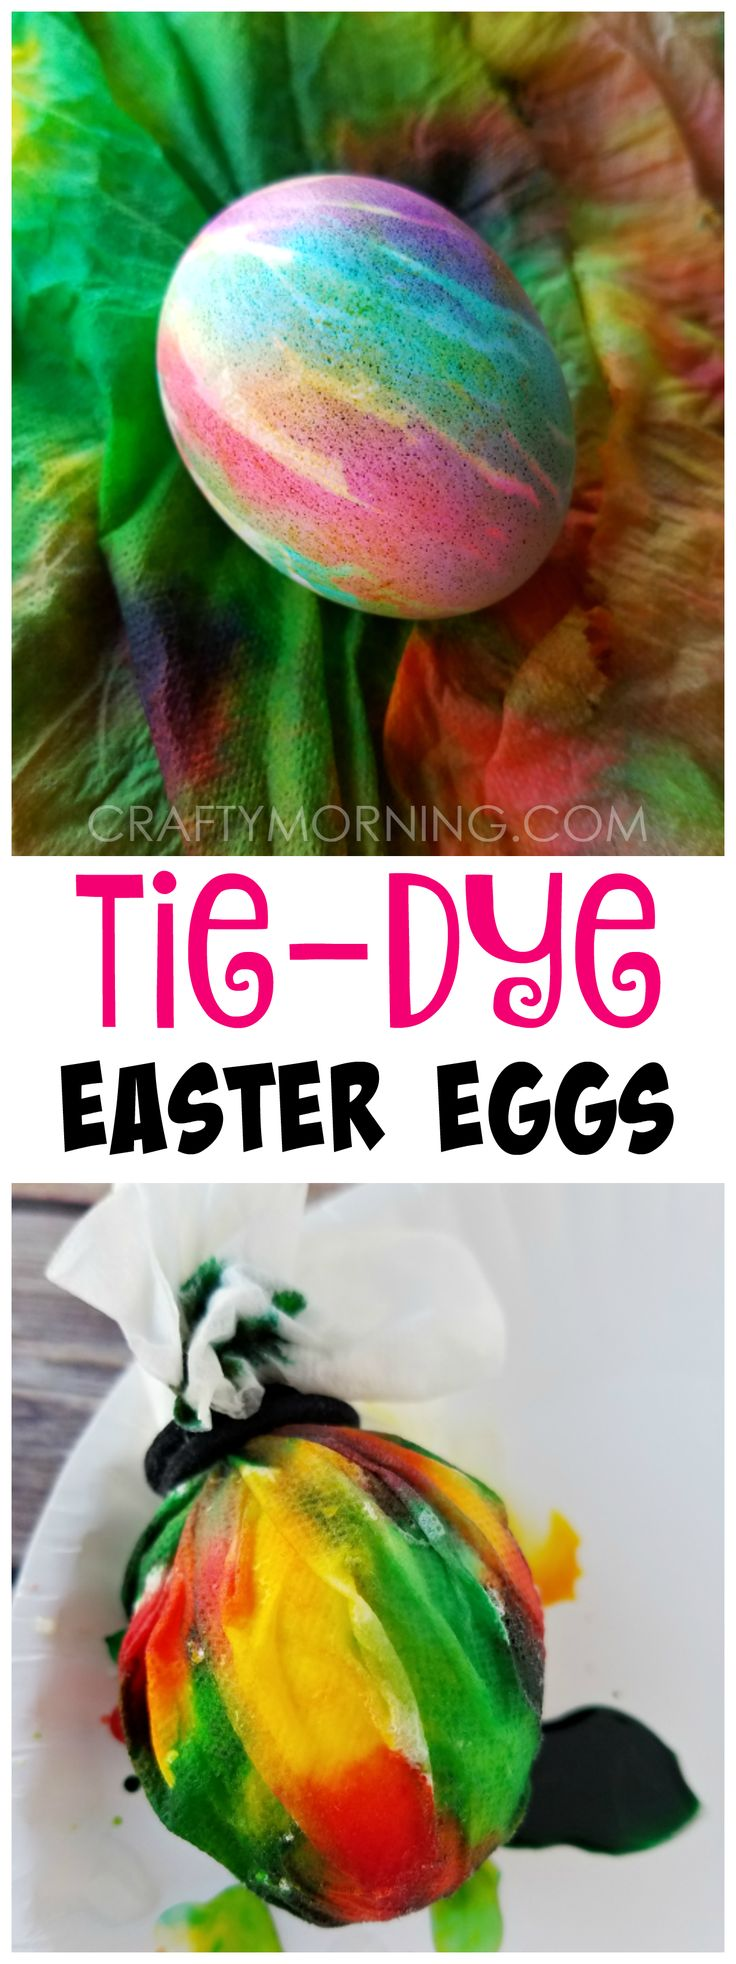 Make tie-dye easter eggs! This is so fun and easy for kids to make!